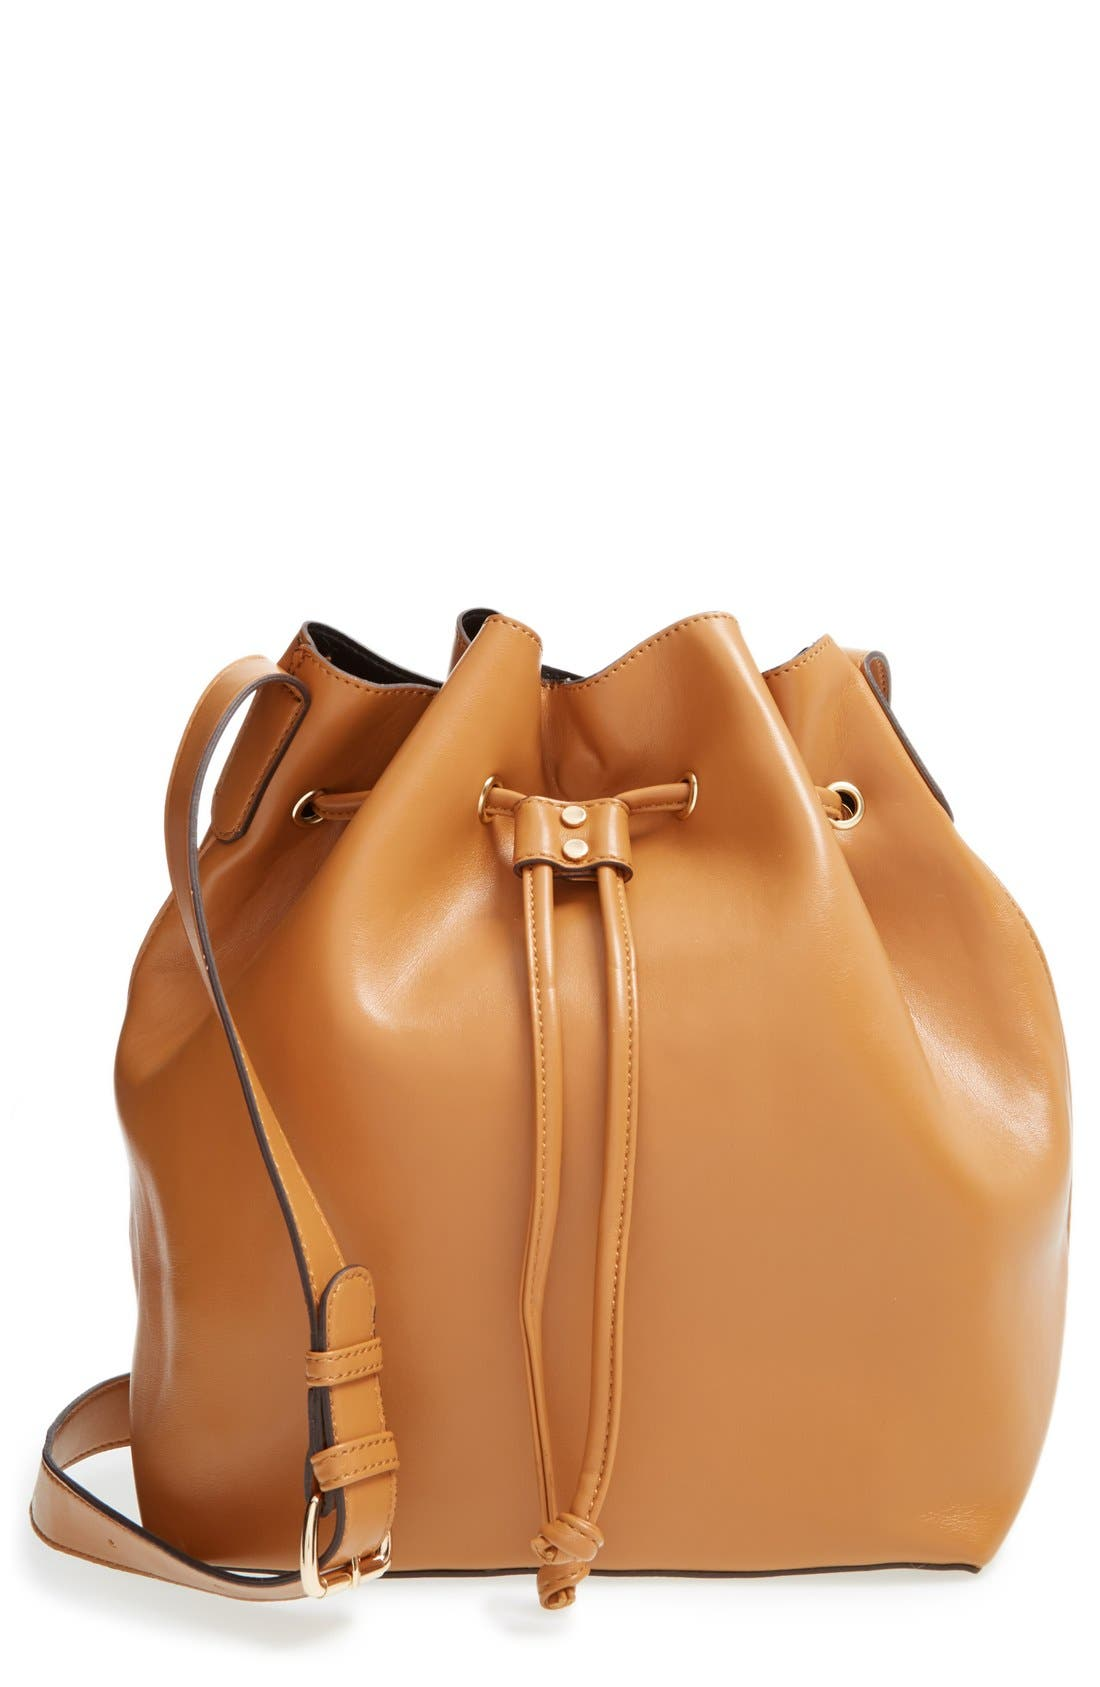 Alternate Image 1 Selected - Sole Society 'Nevin' Faux Leather Drawstring Bucket Bag